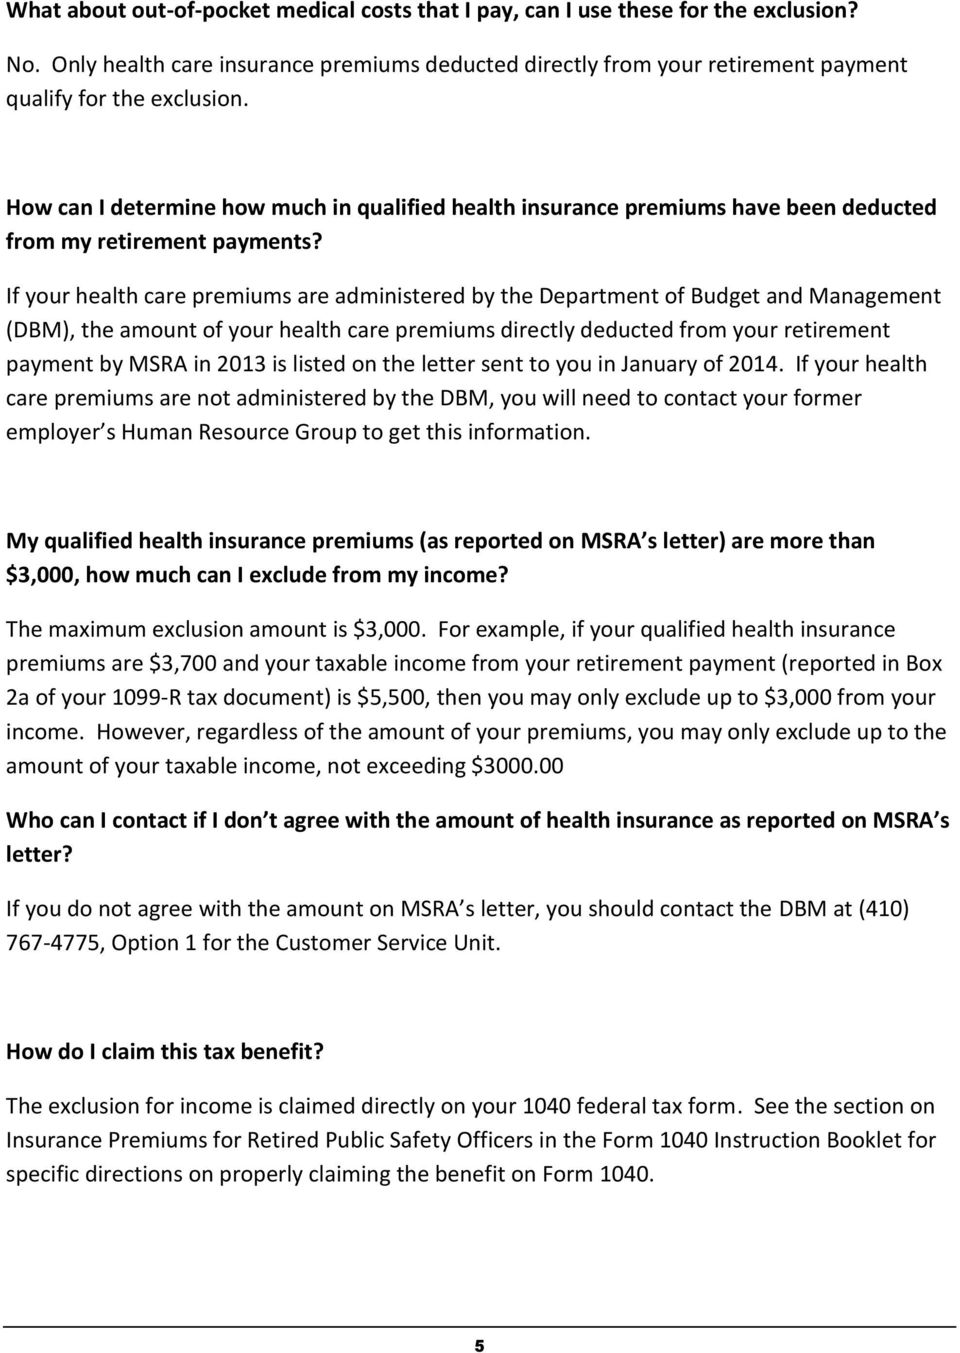 If your health care premiums are administered by the Department of Budget and Management (DBM), the amount of your health care premiums directly deducted from your retirement payment by MSRA in 2013